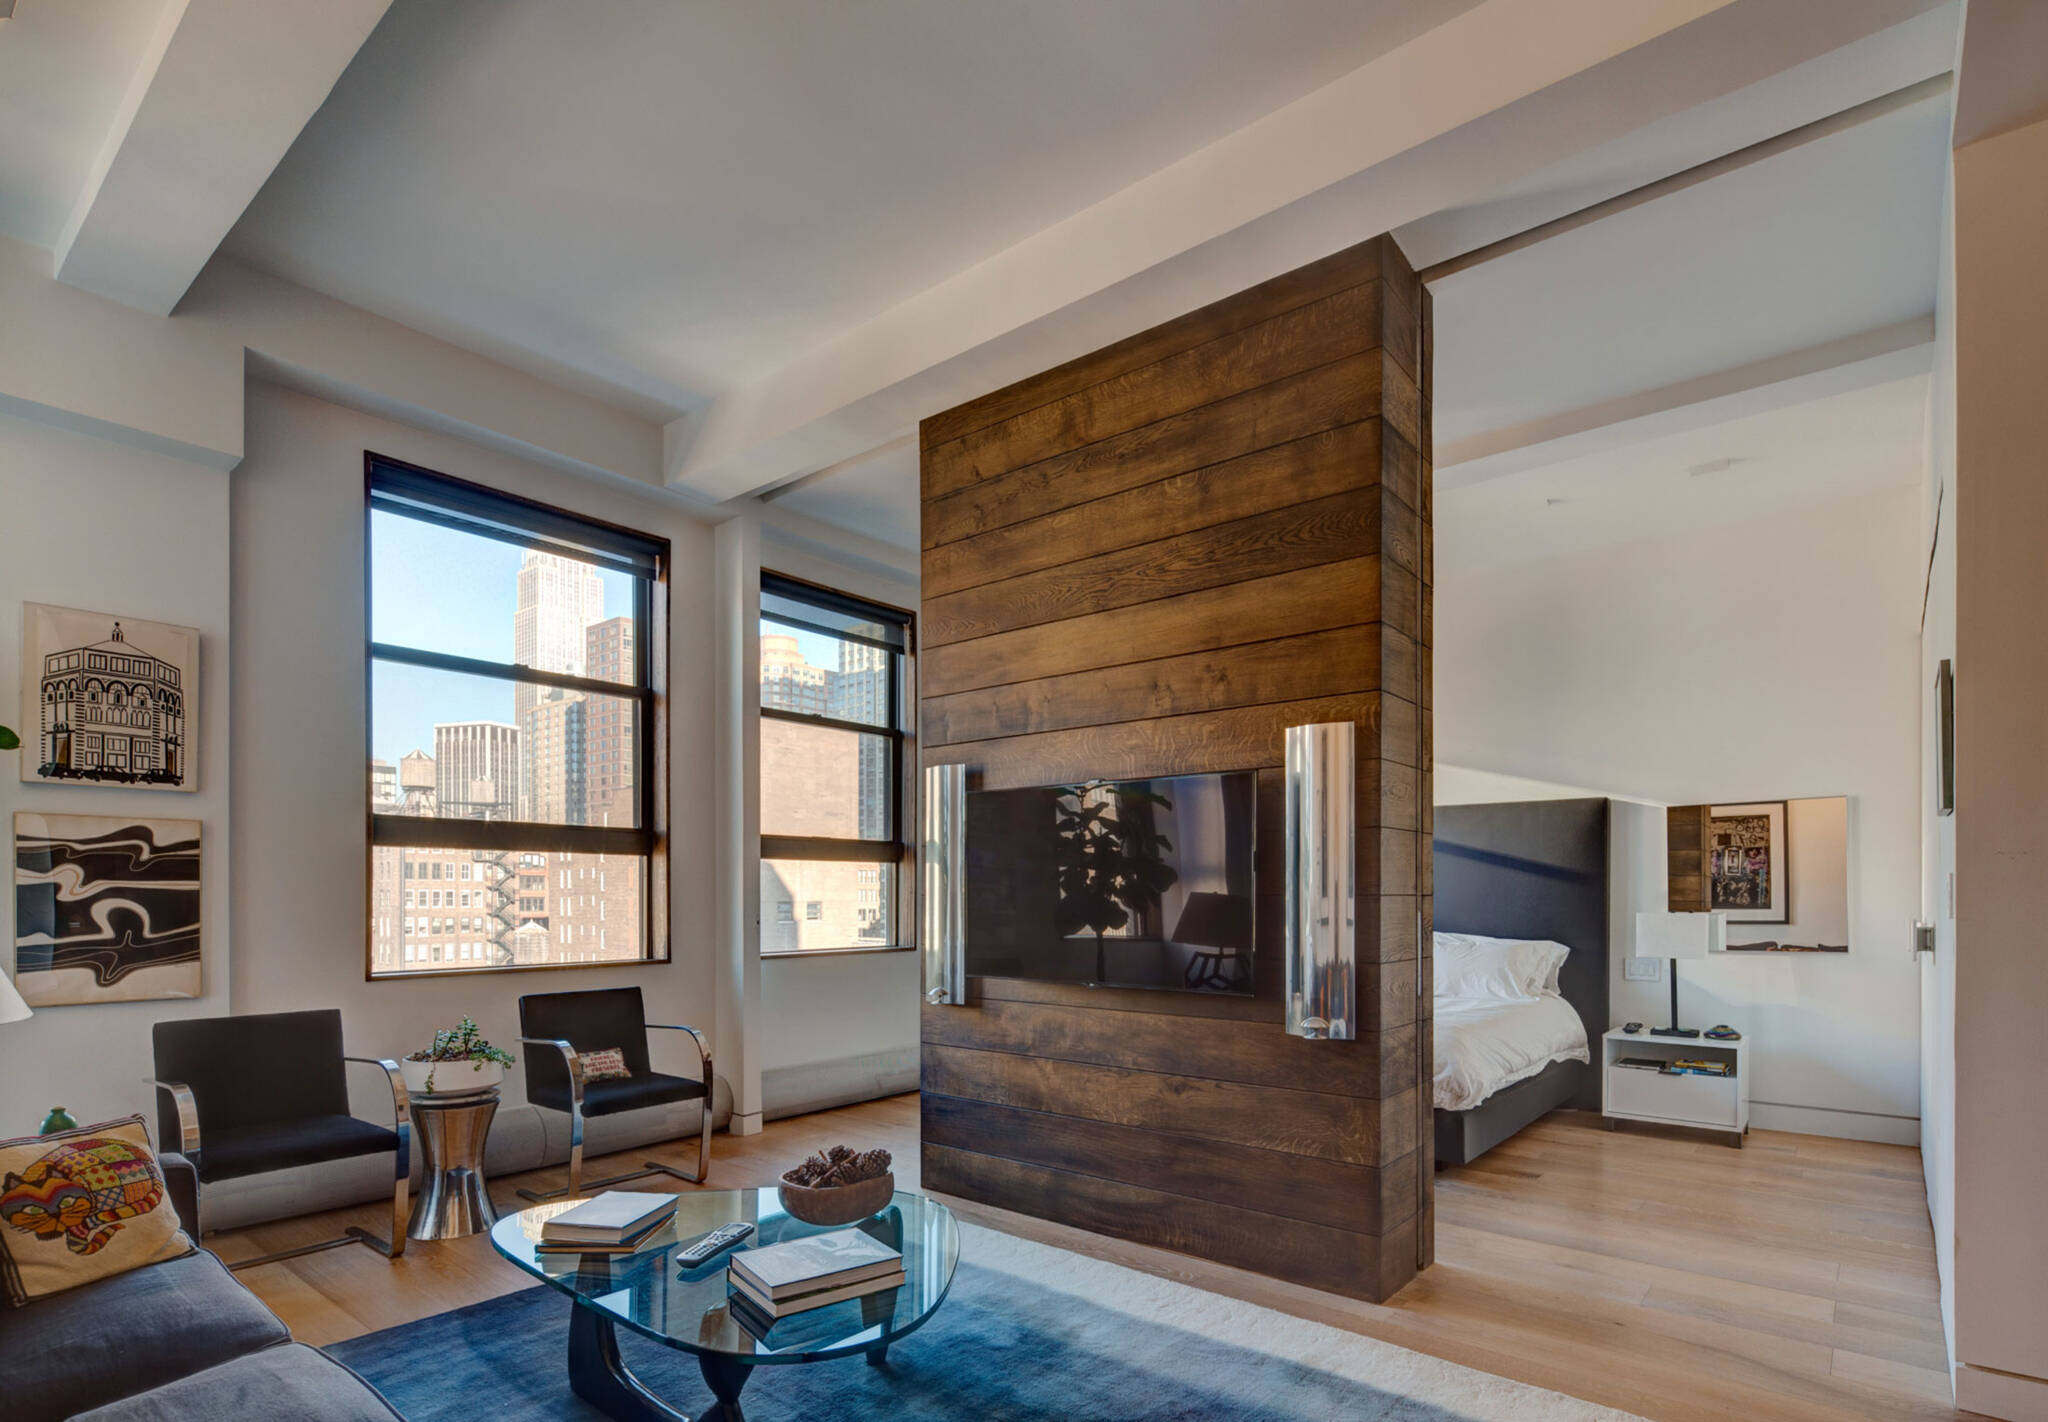 Open space of the residence renovation project in the Chelsea Mews building on the Flatiron District in Manhattan, New York City designed by the architecture studio Danny Forster & Architecture